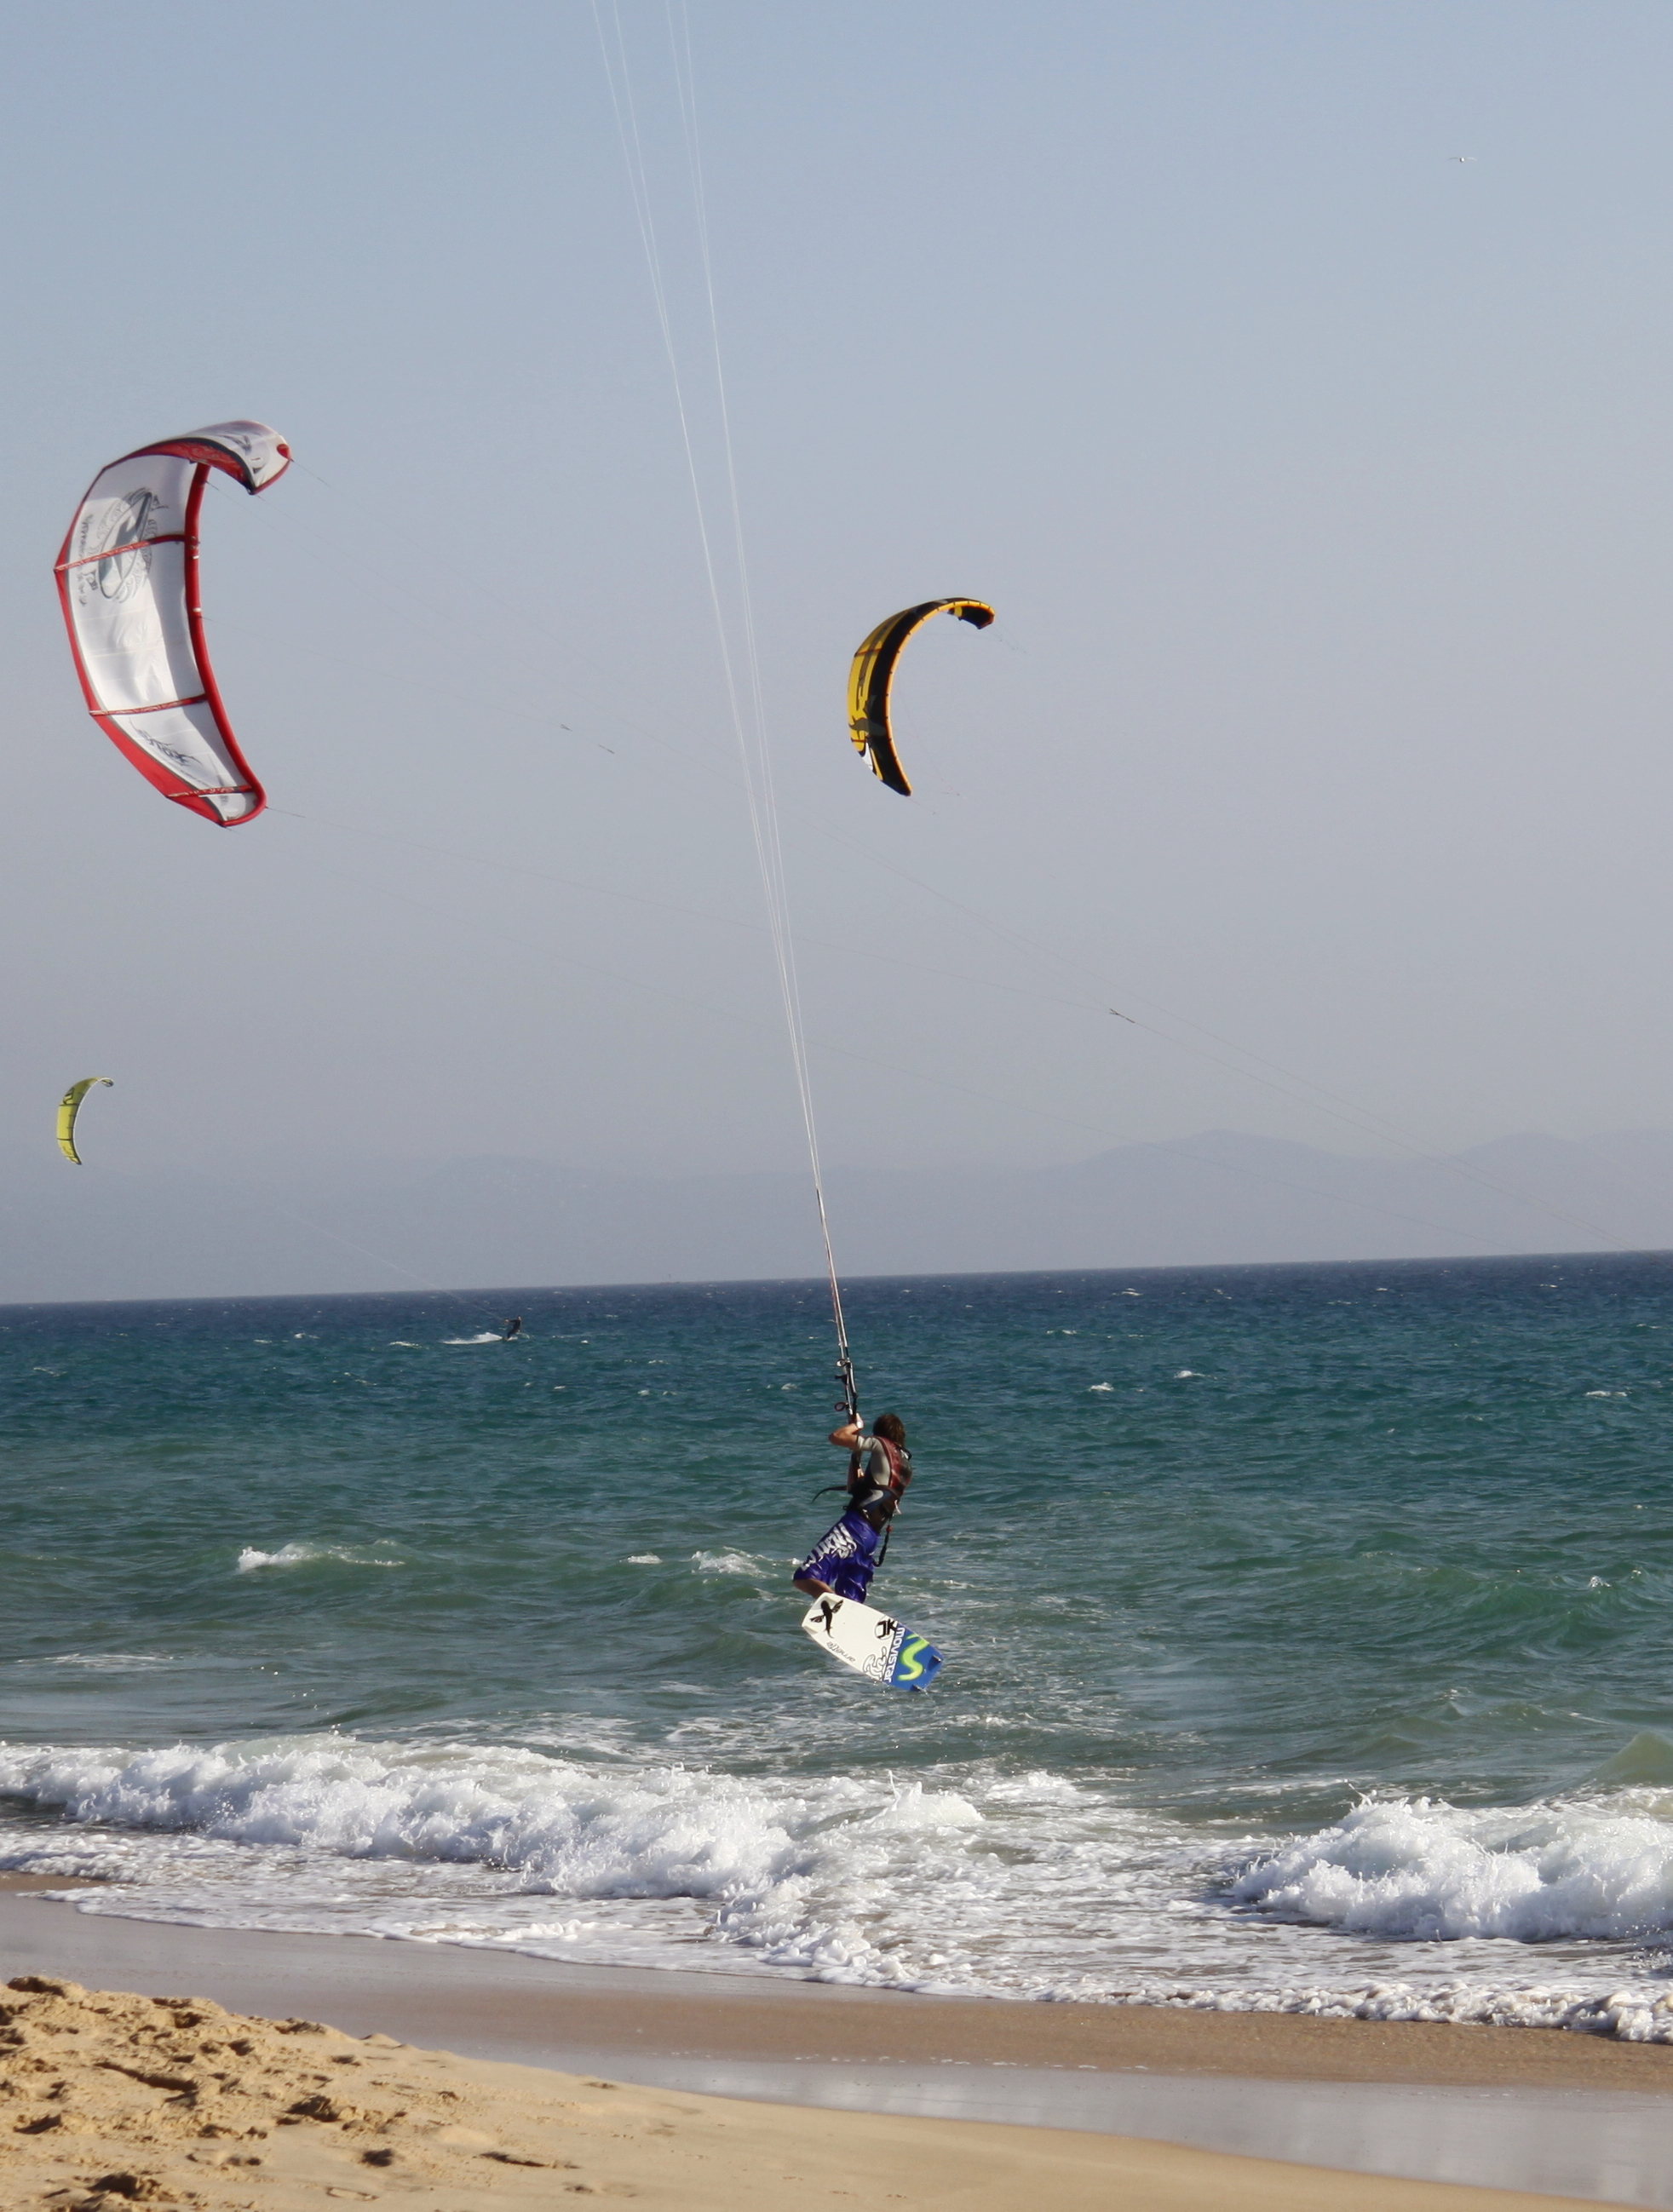 Kite Surfer, Tarifa, Andalucia www.andrewforbes.com